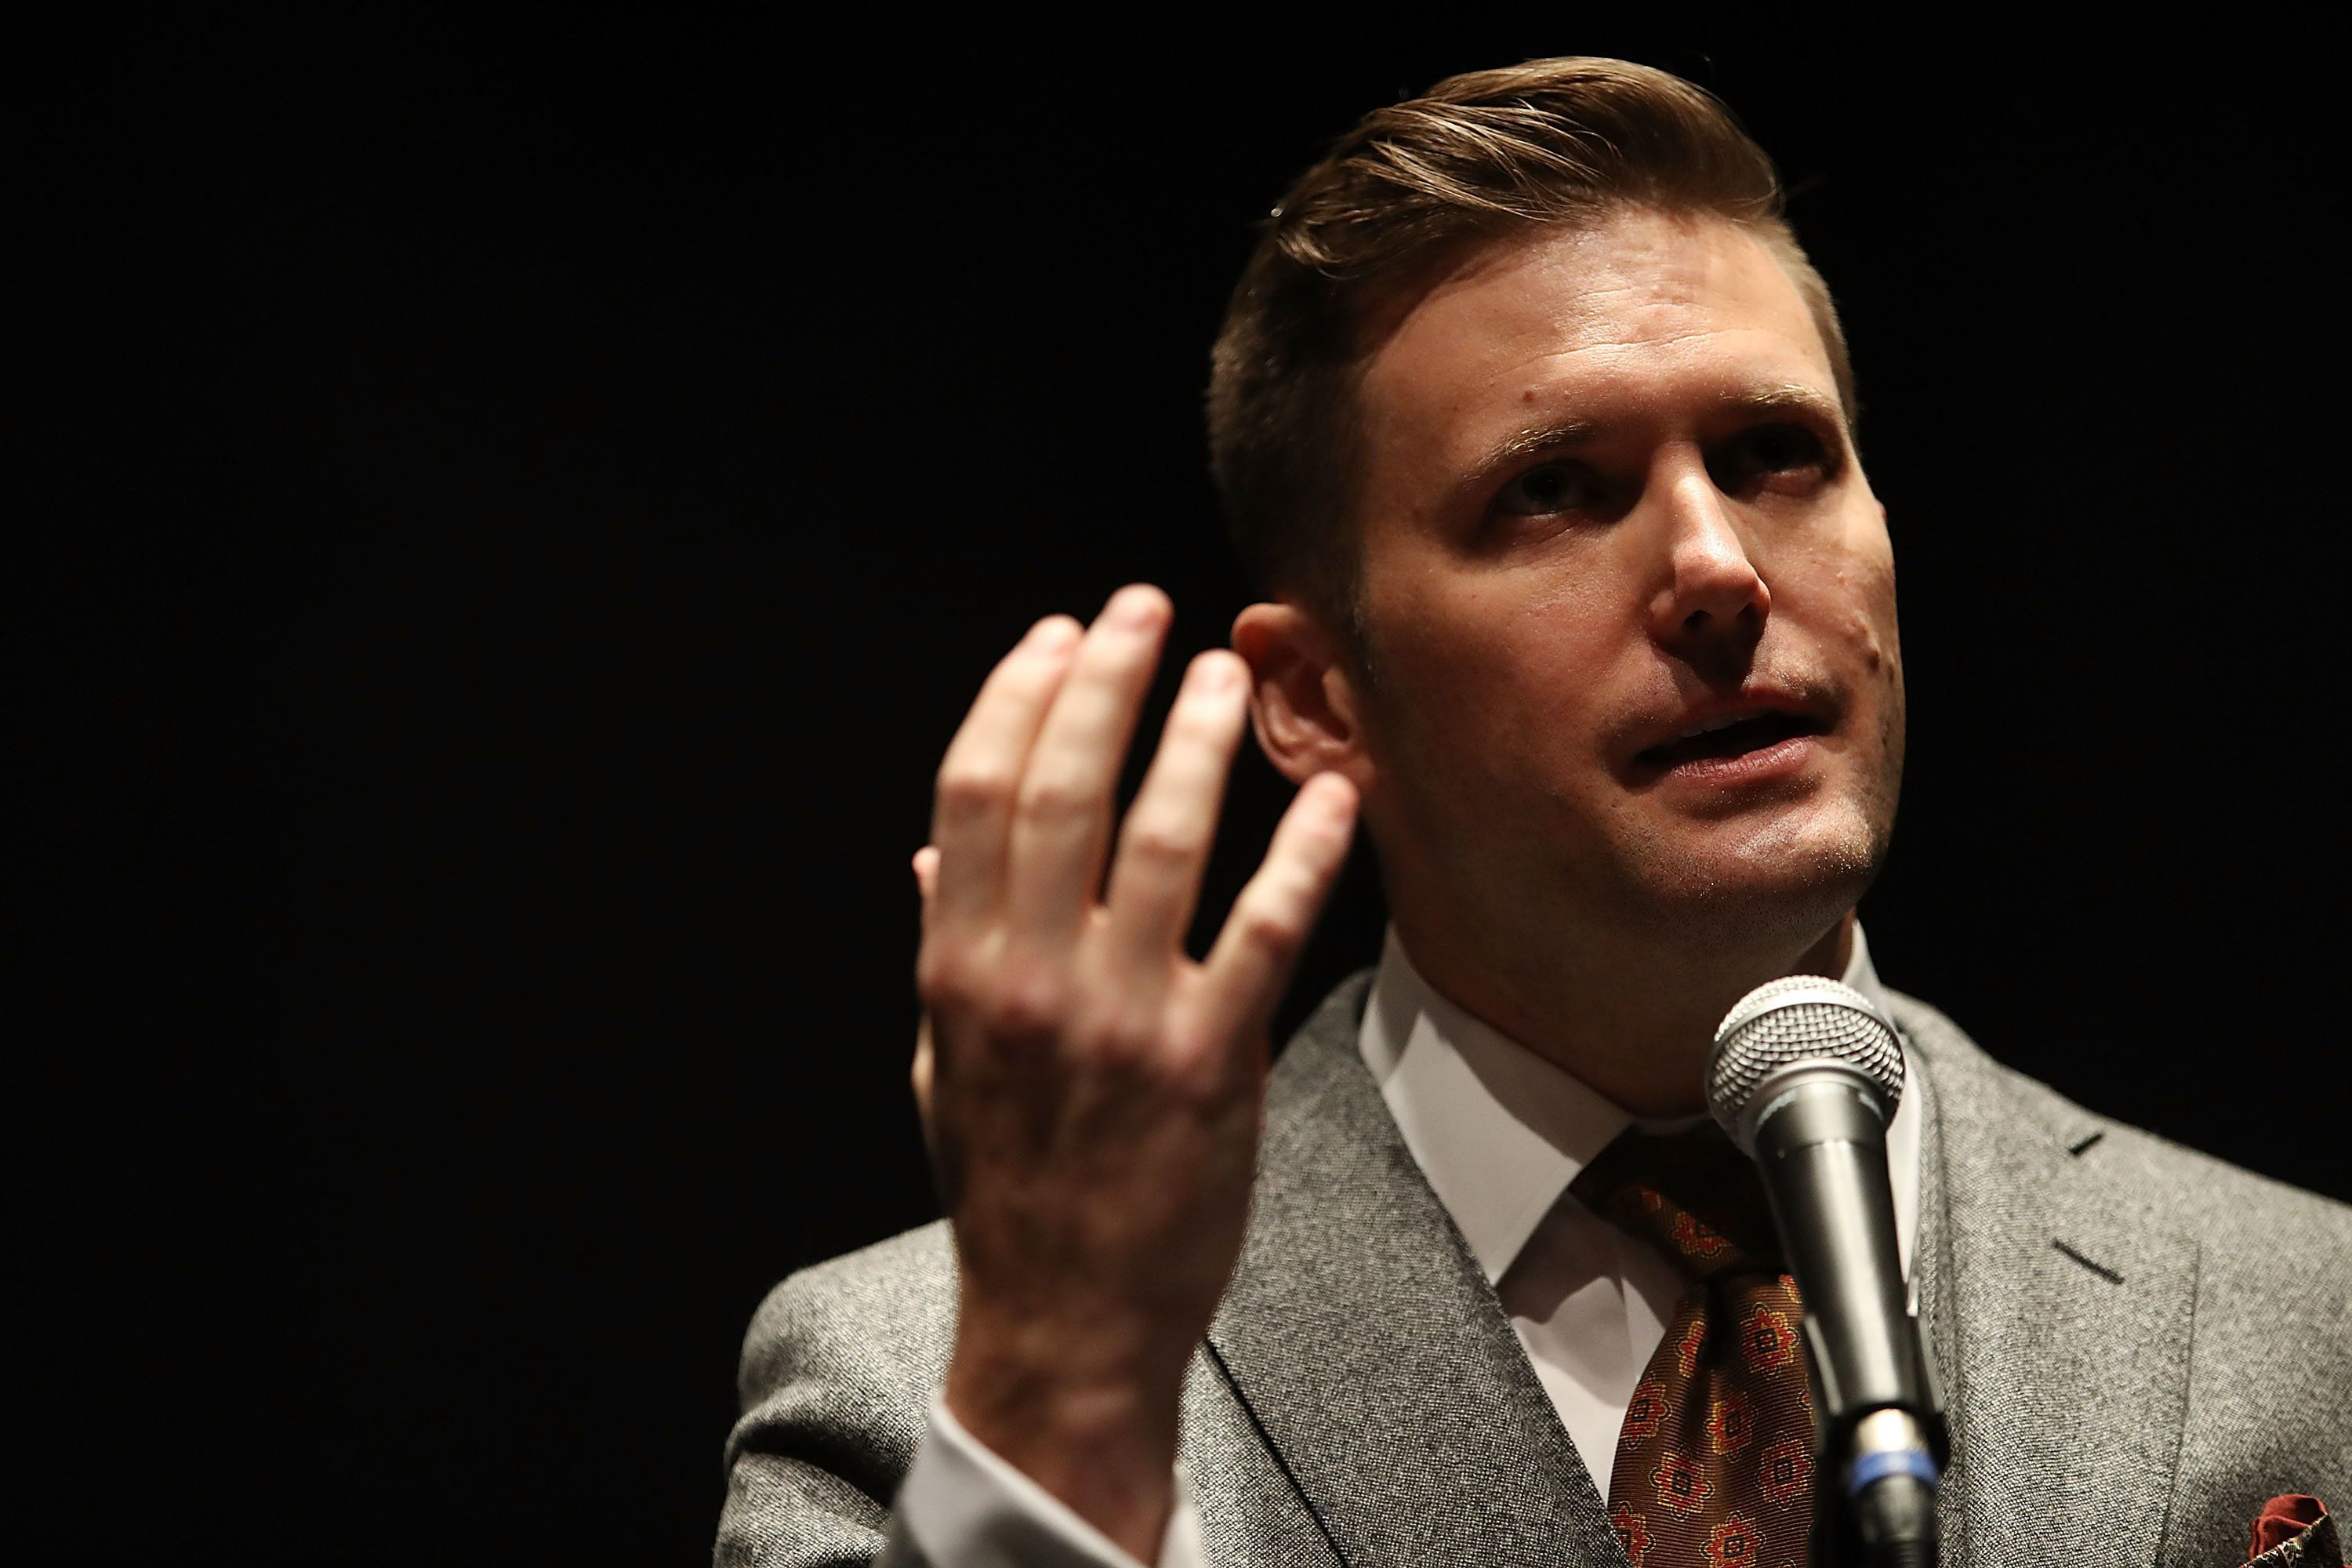 Twitter Just Unverified A White Supremacist, And He's Not